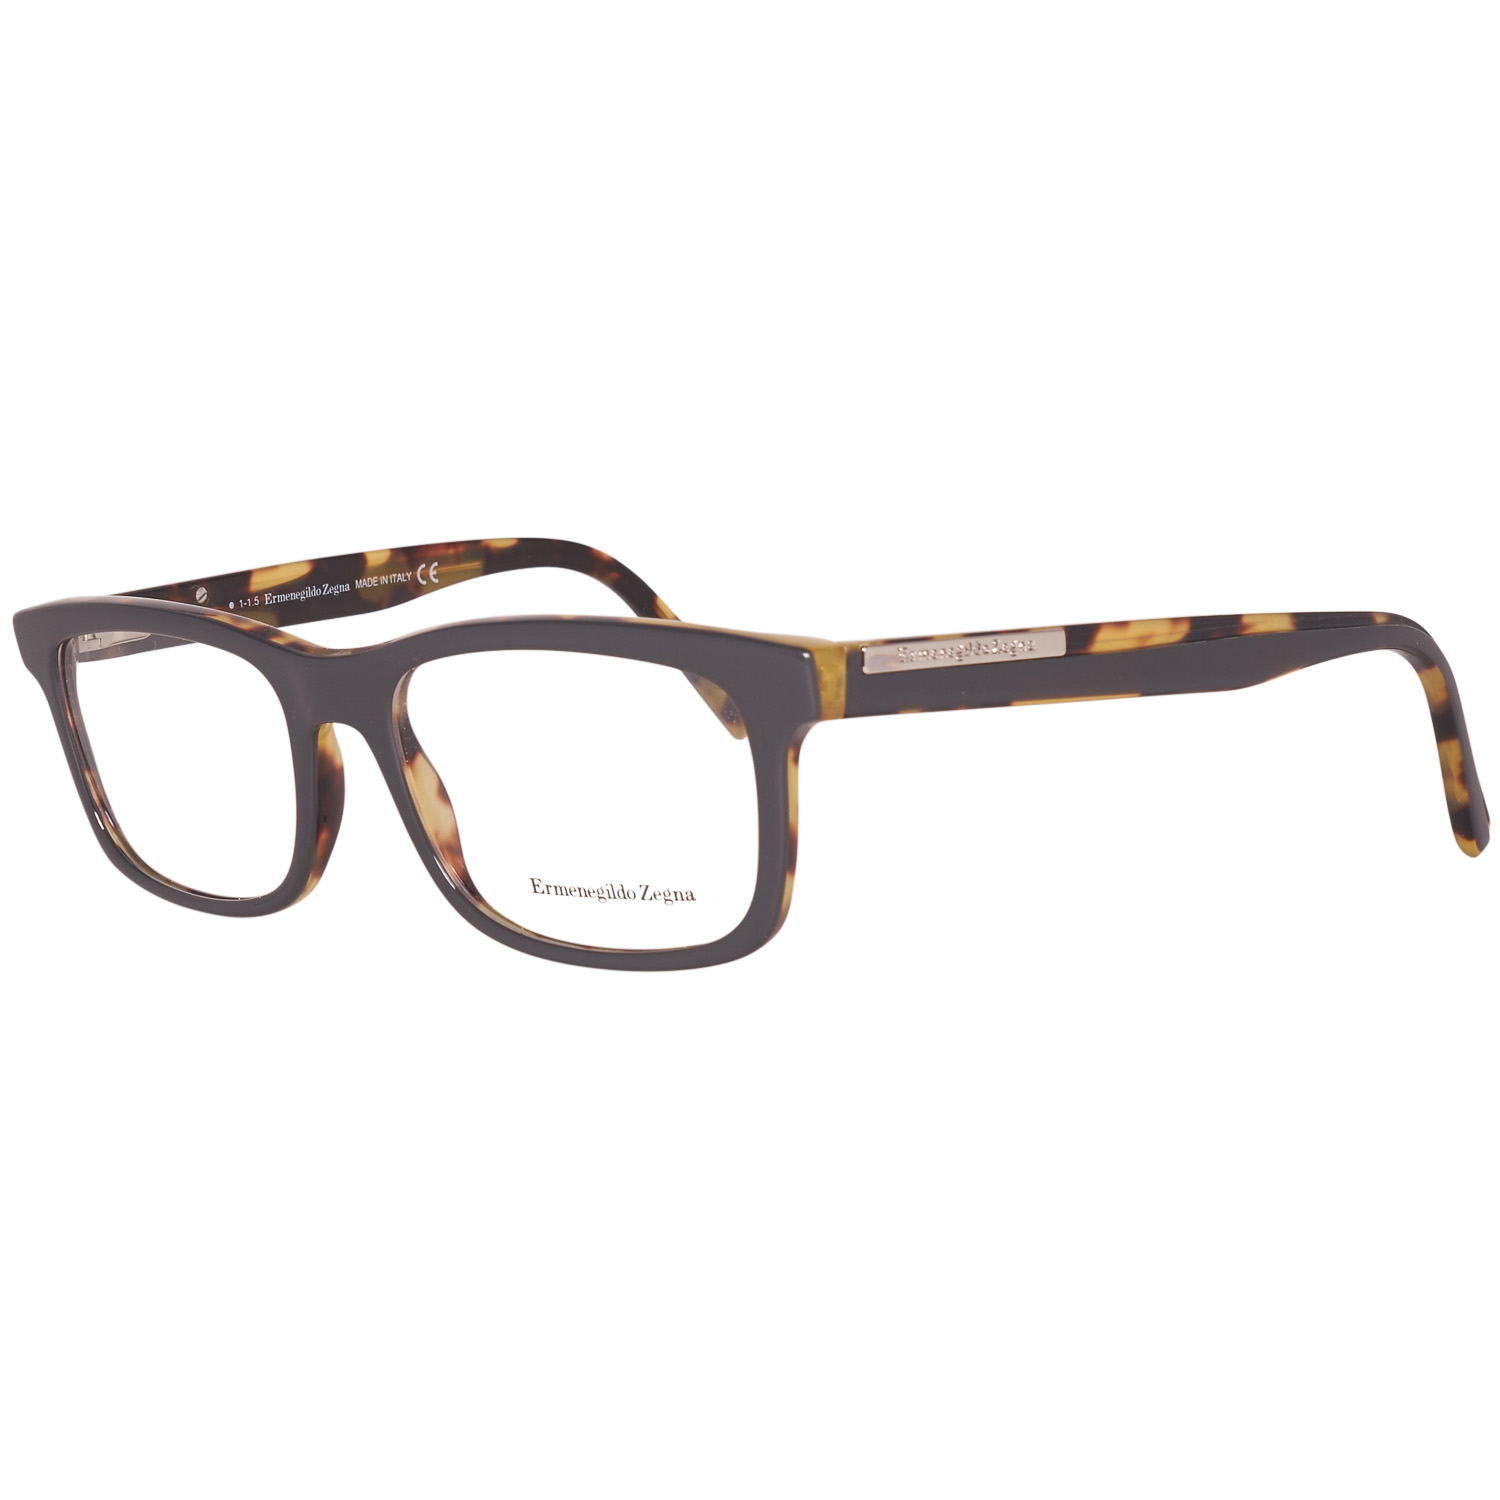 Ermenegildo Zegna Optical Frame EZ5030 020 54 Grey